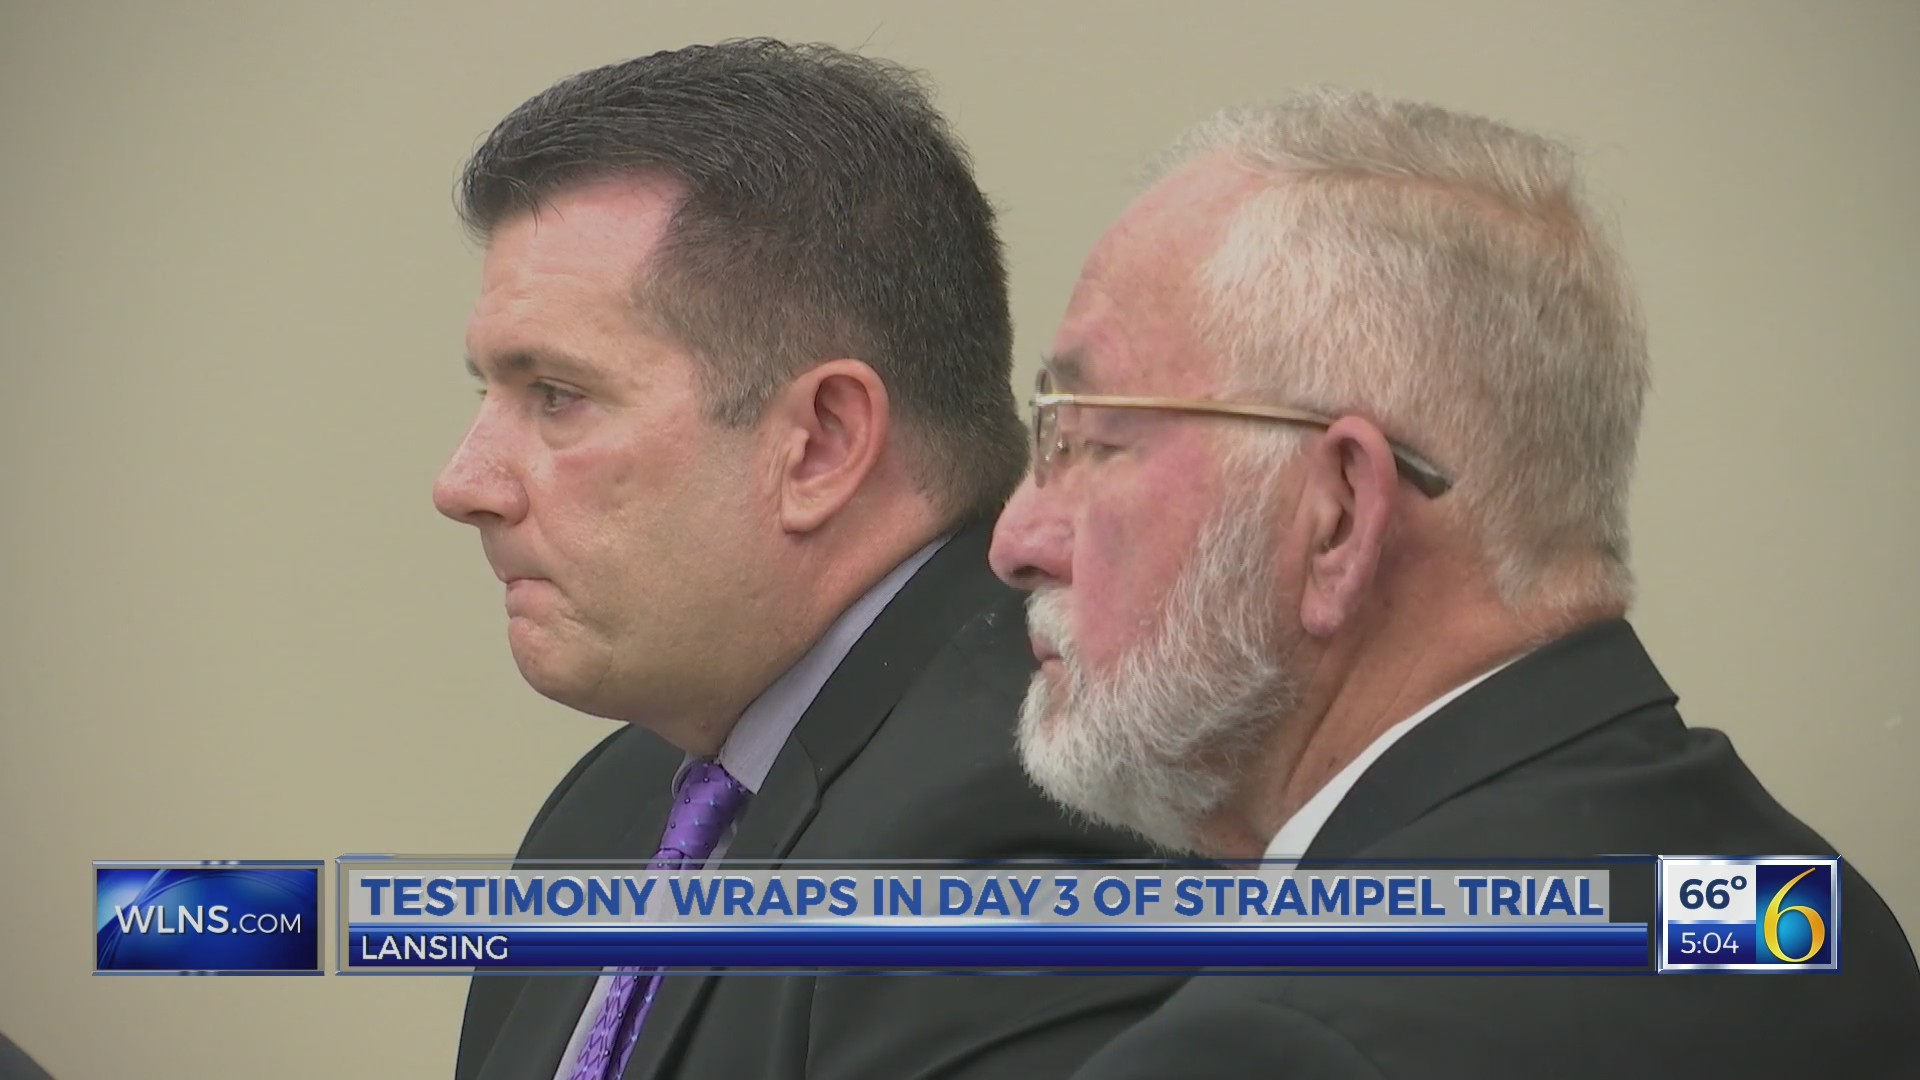 Testimony wraps in day 3 of Strampel Trial